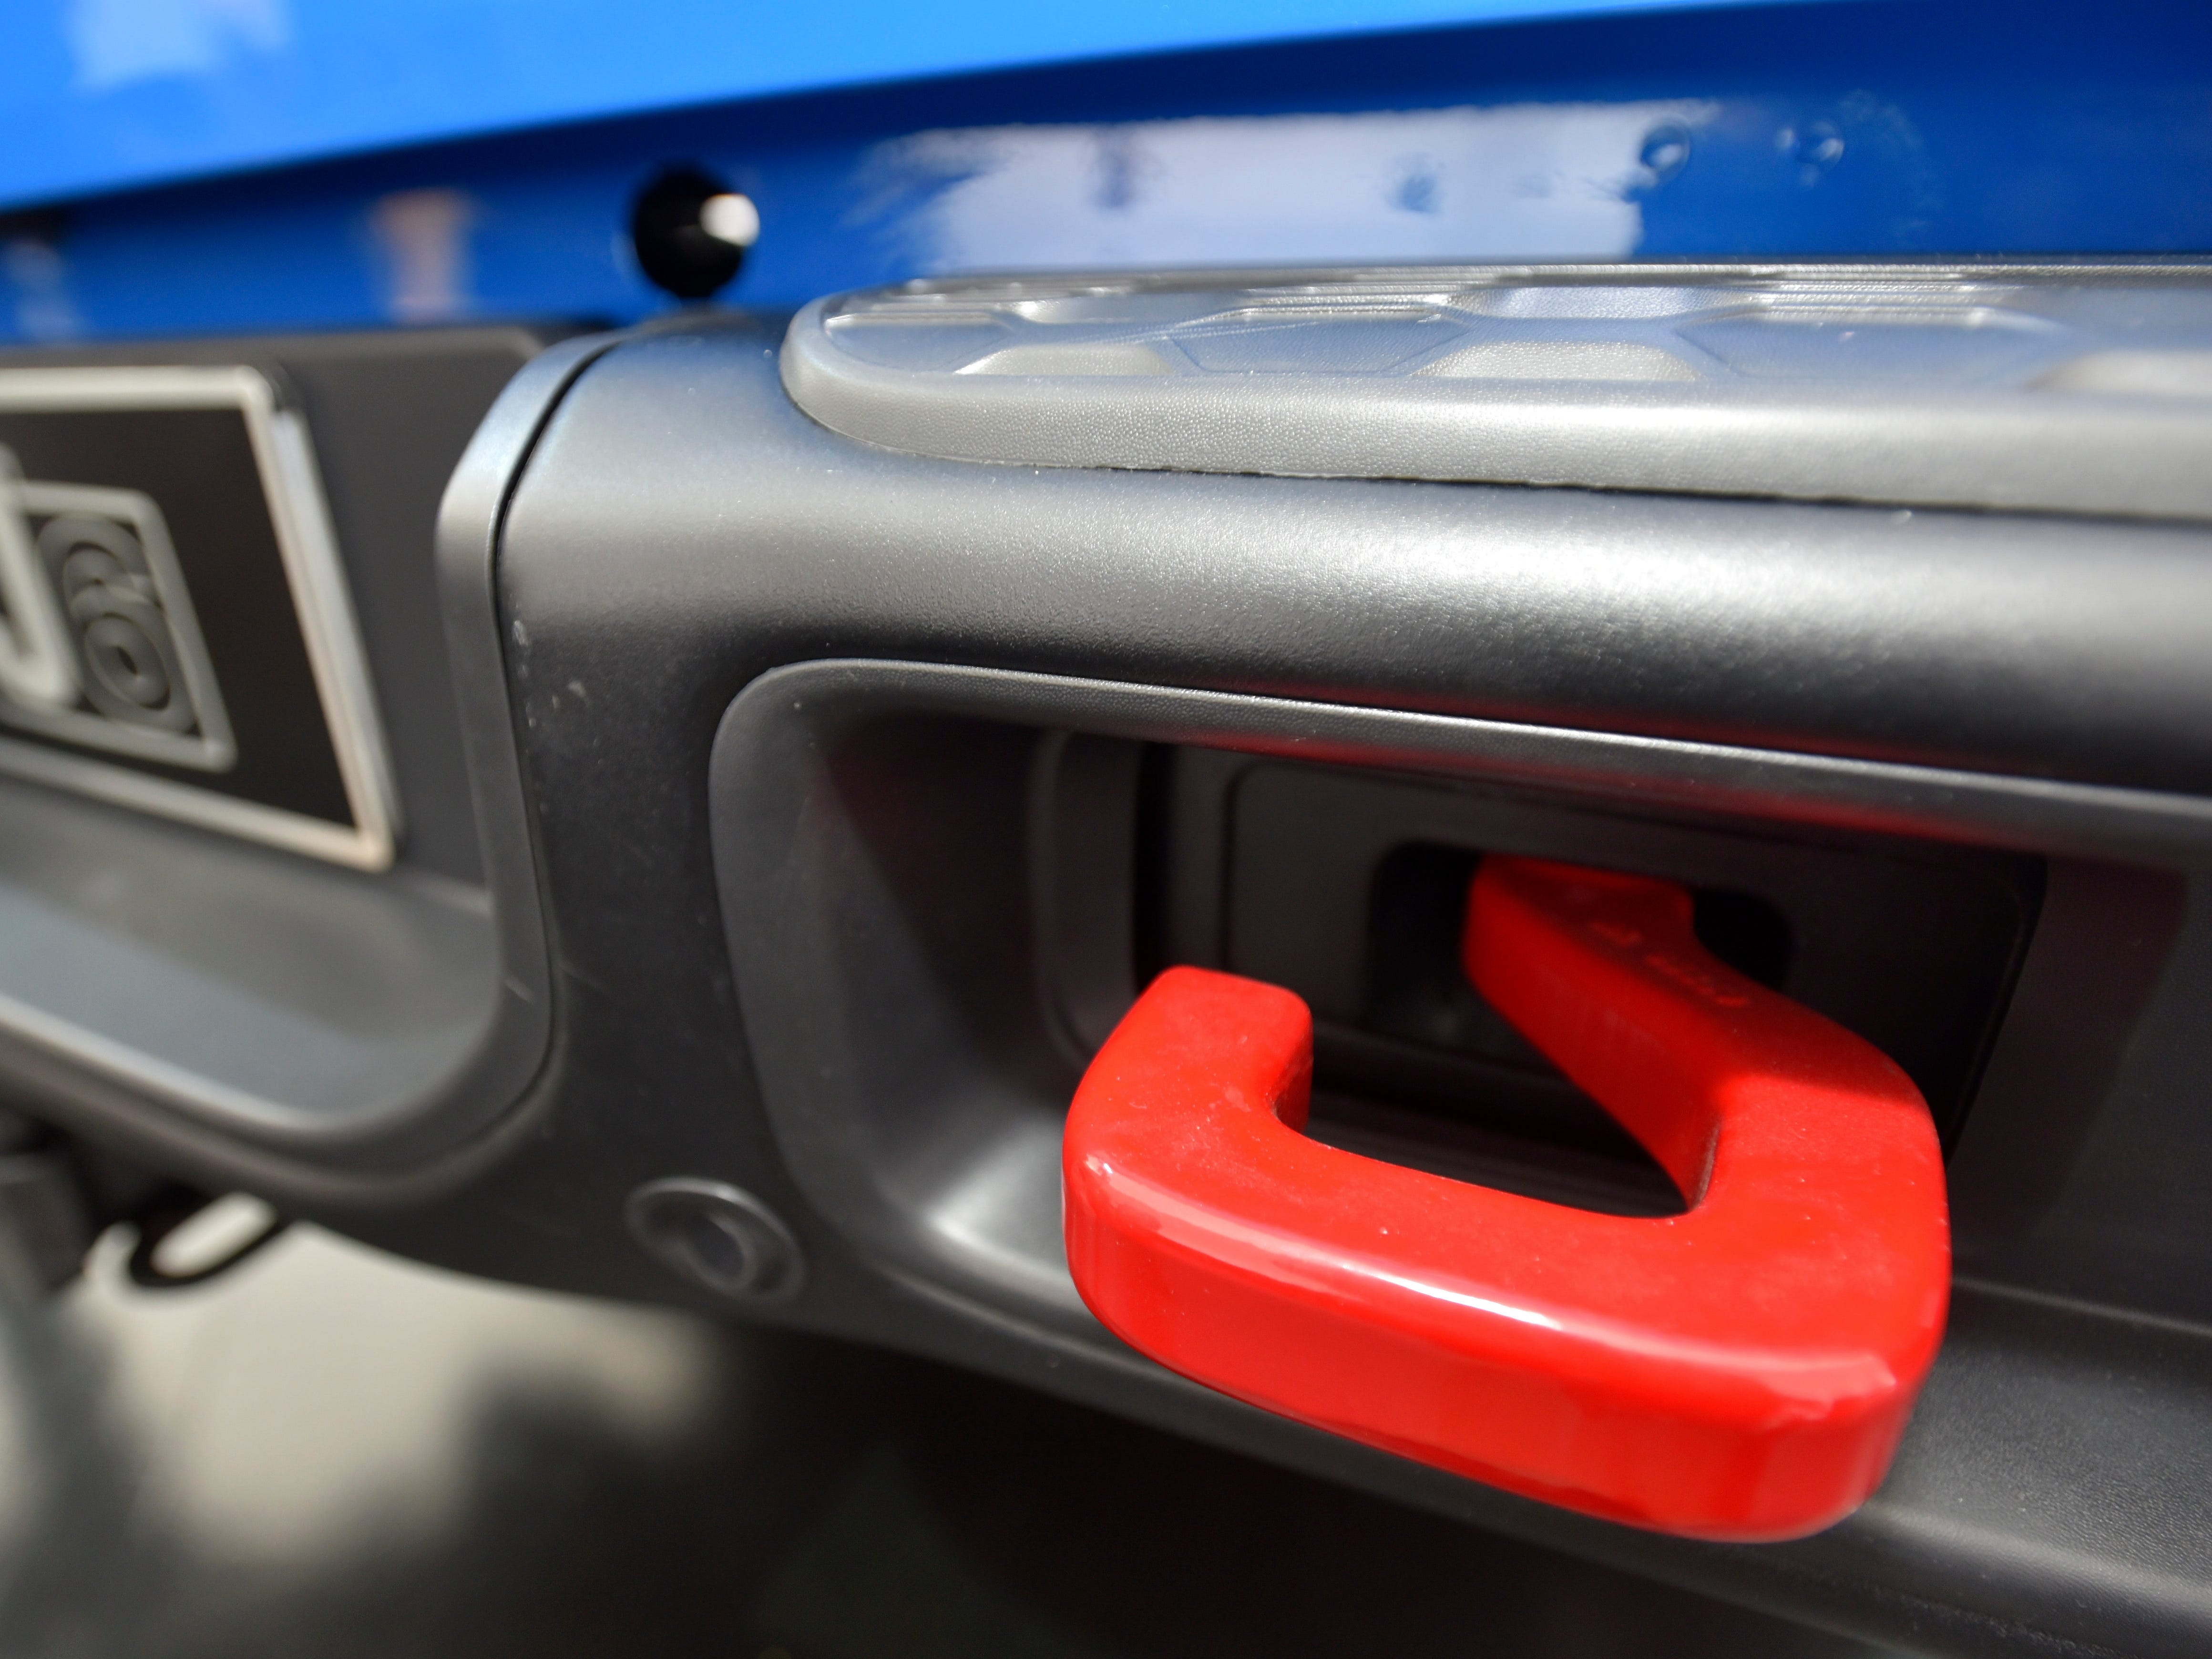 This is one of two tow hooks on the Jeep J6 concept in Metallic Brilliant Blue.